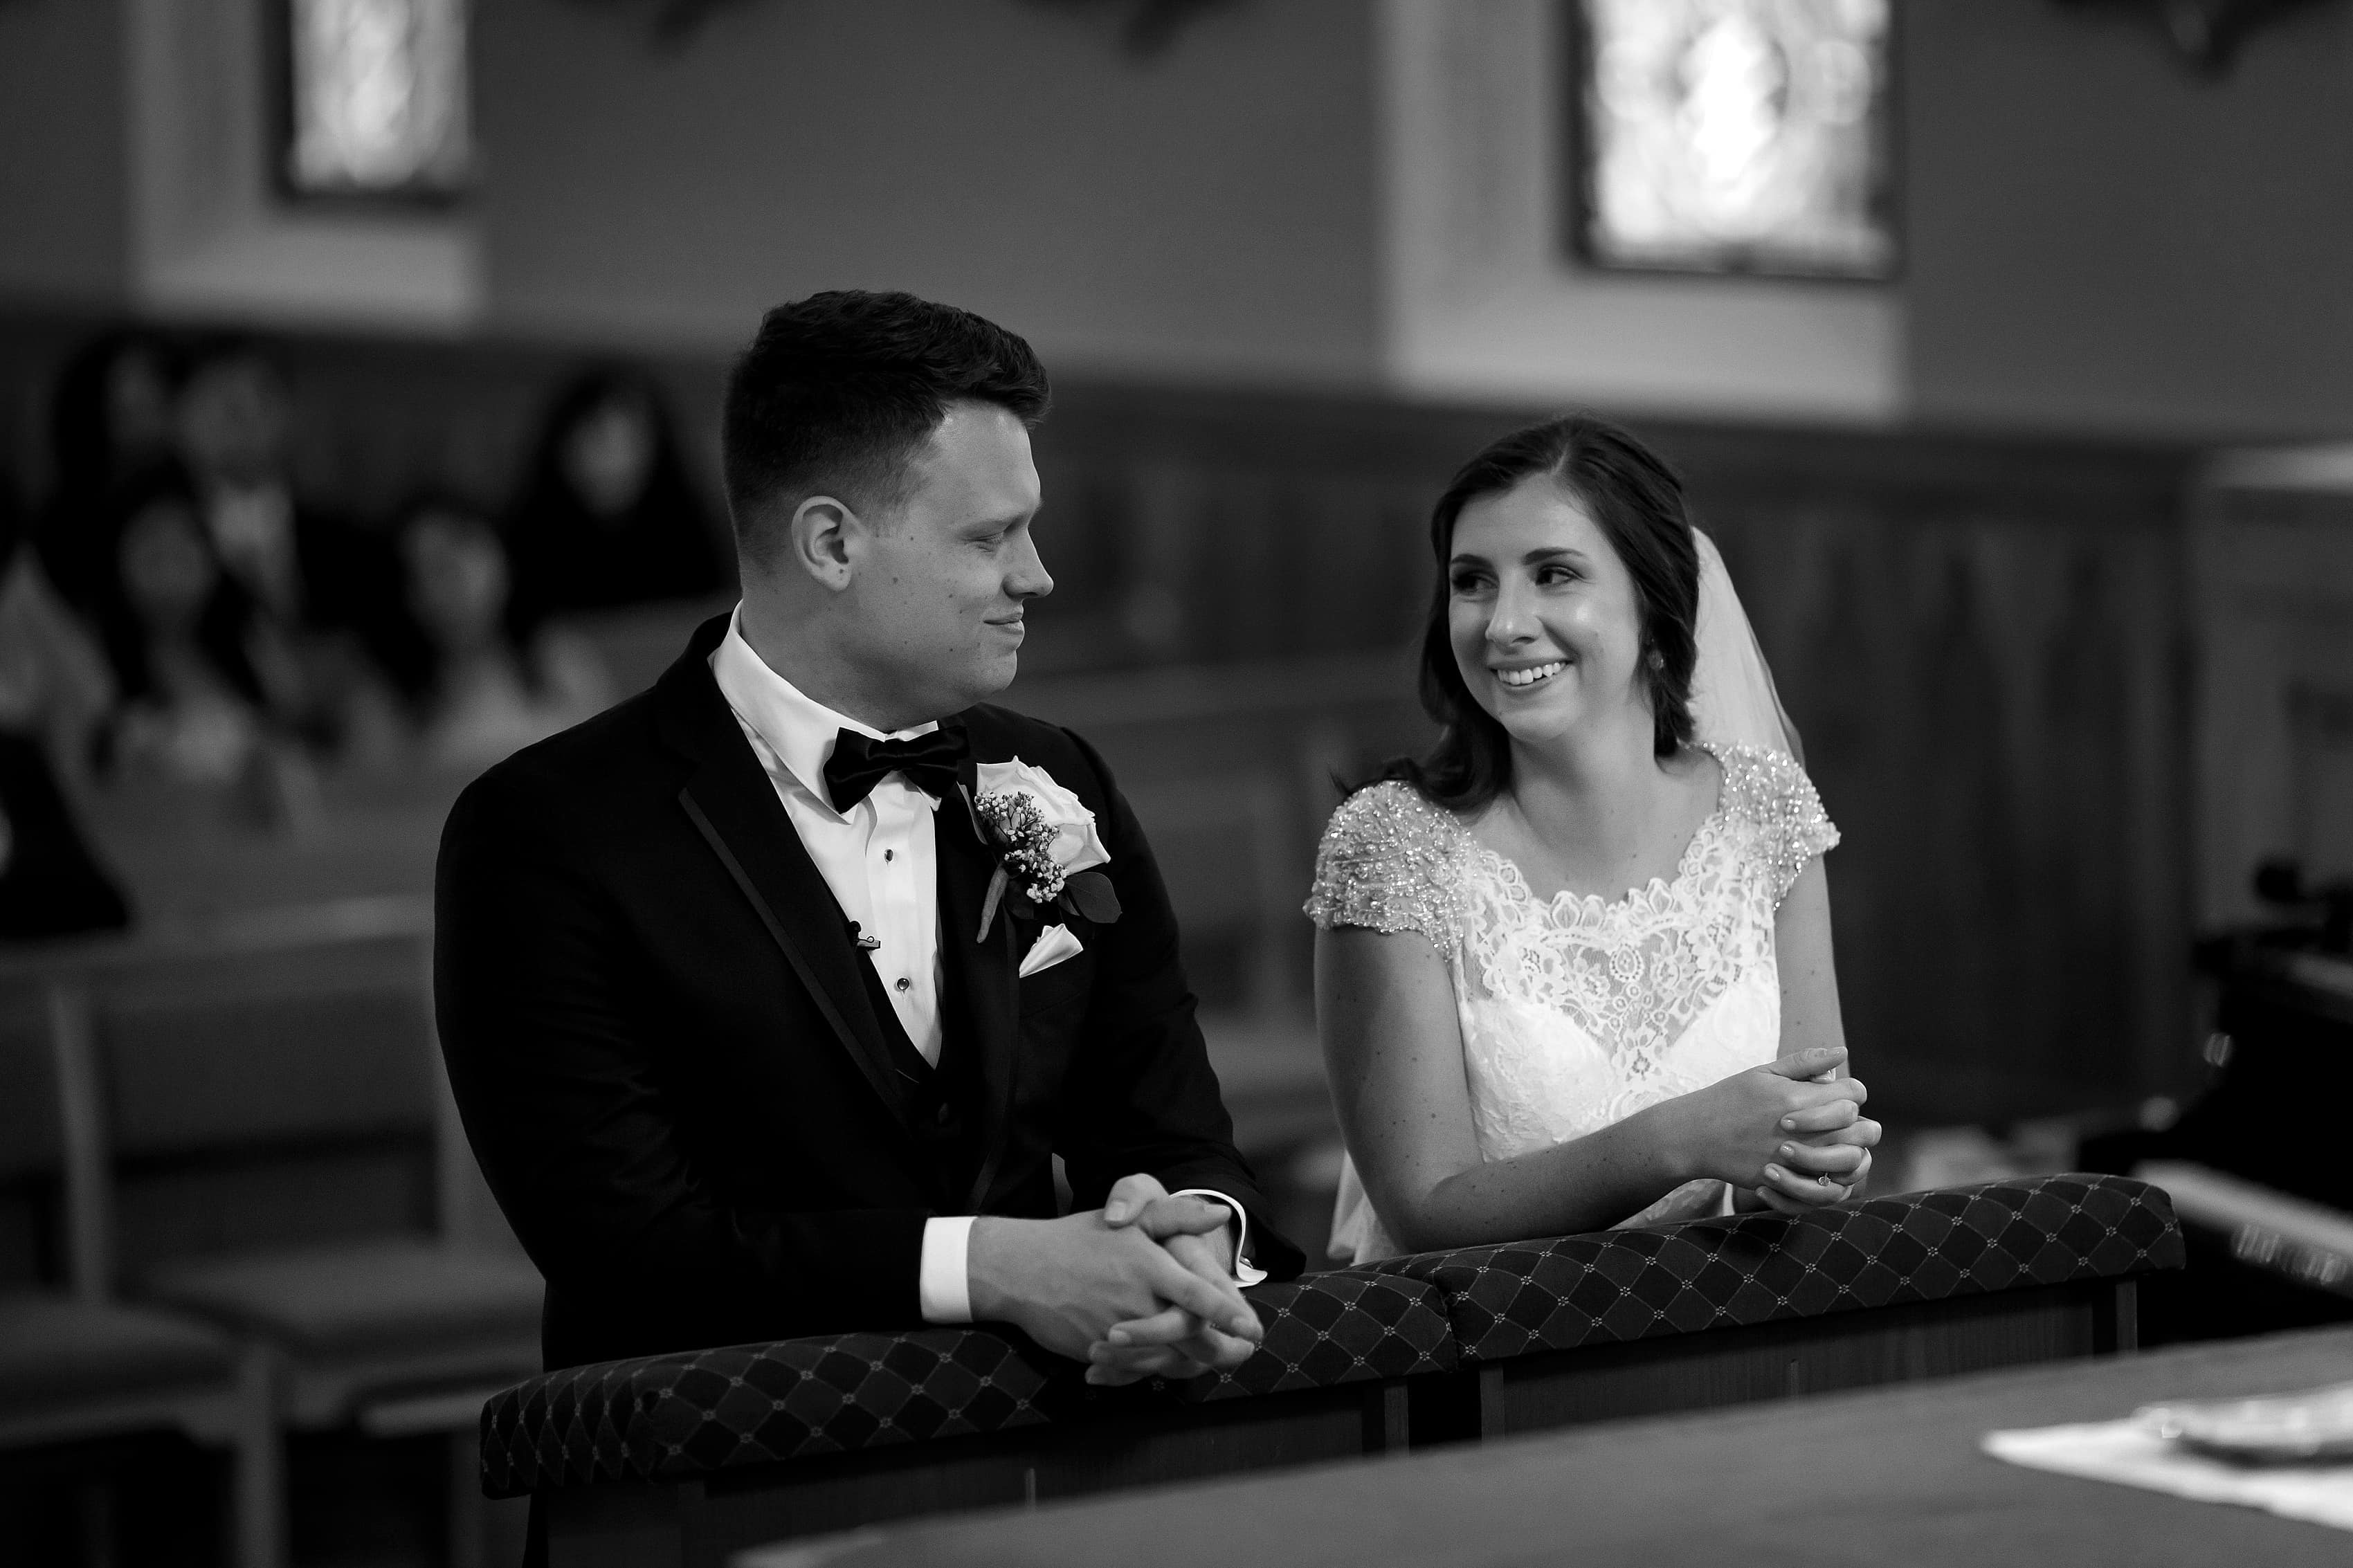 Bride and groom smile at the alter during wedding ceremony at St. Francis Church in Lake Geneva, Wisconsin